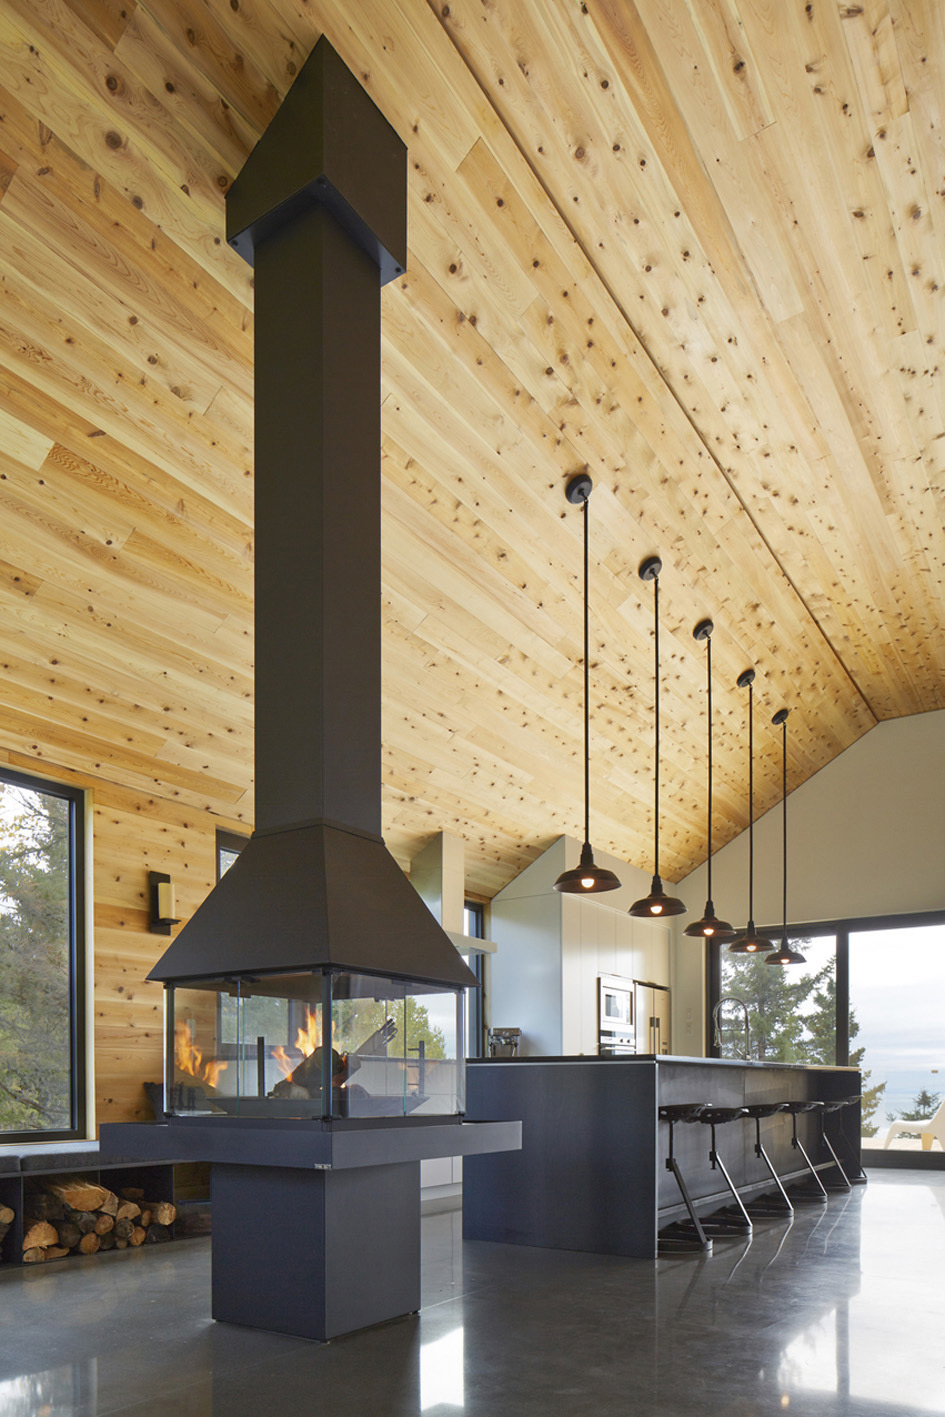 Fireplace, Kitchen, Pendant Lighting, Malbaie VIII Residence in Charlevoix